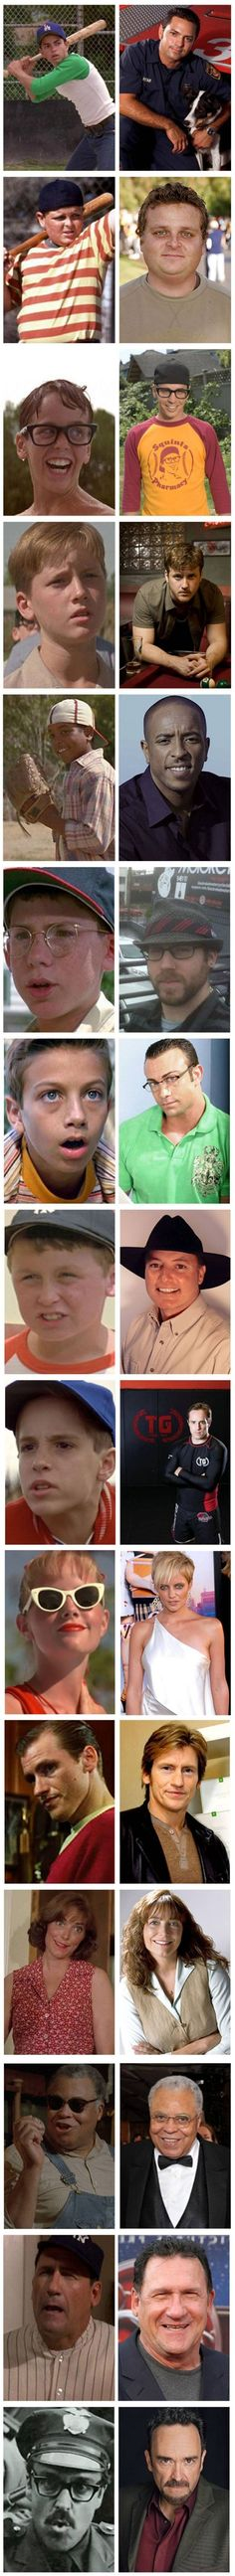 The Sandlot - Then (1993) and Now (2013) by leanne